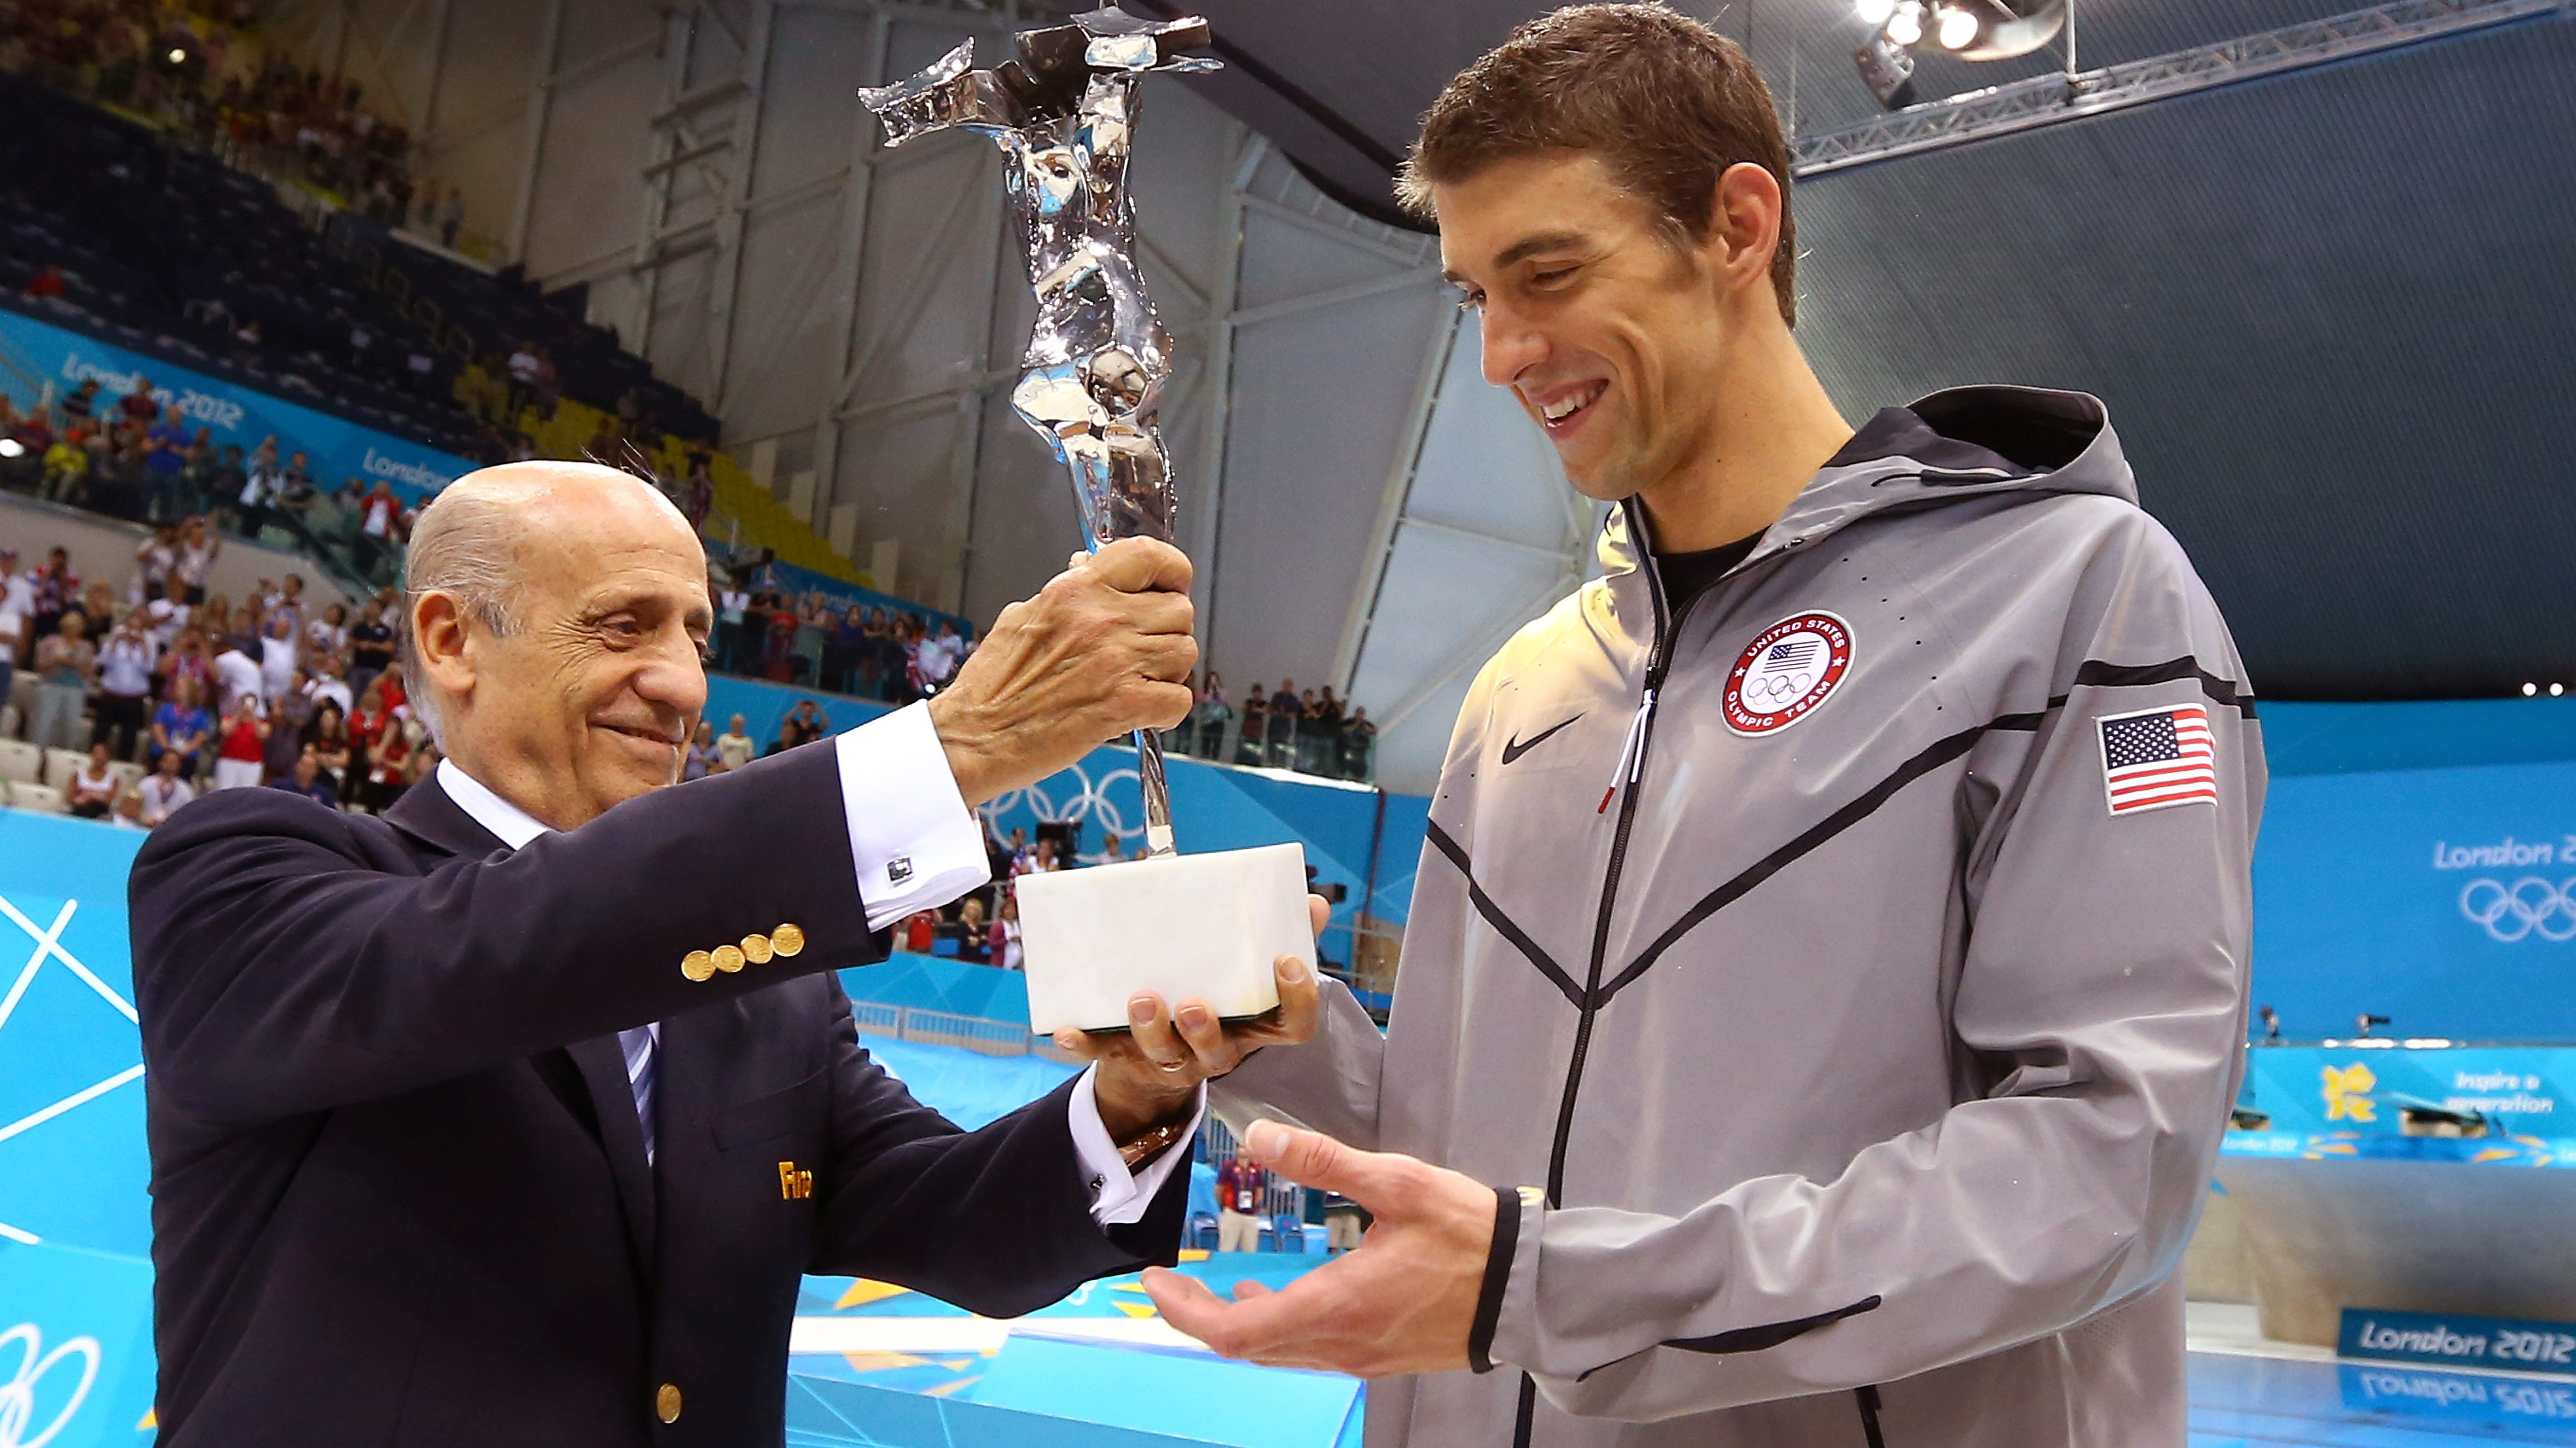 Michael Phelps Exits The Olympics, And Enters Retirement At 27 : The Torch : NPR